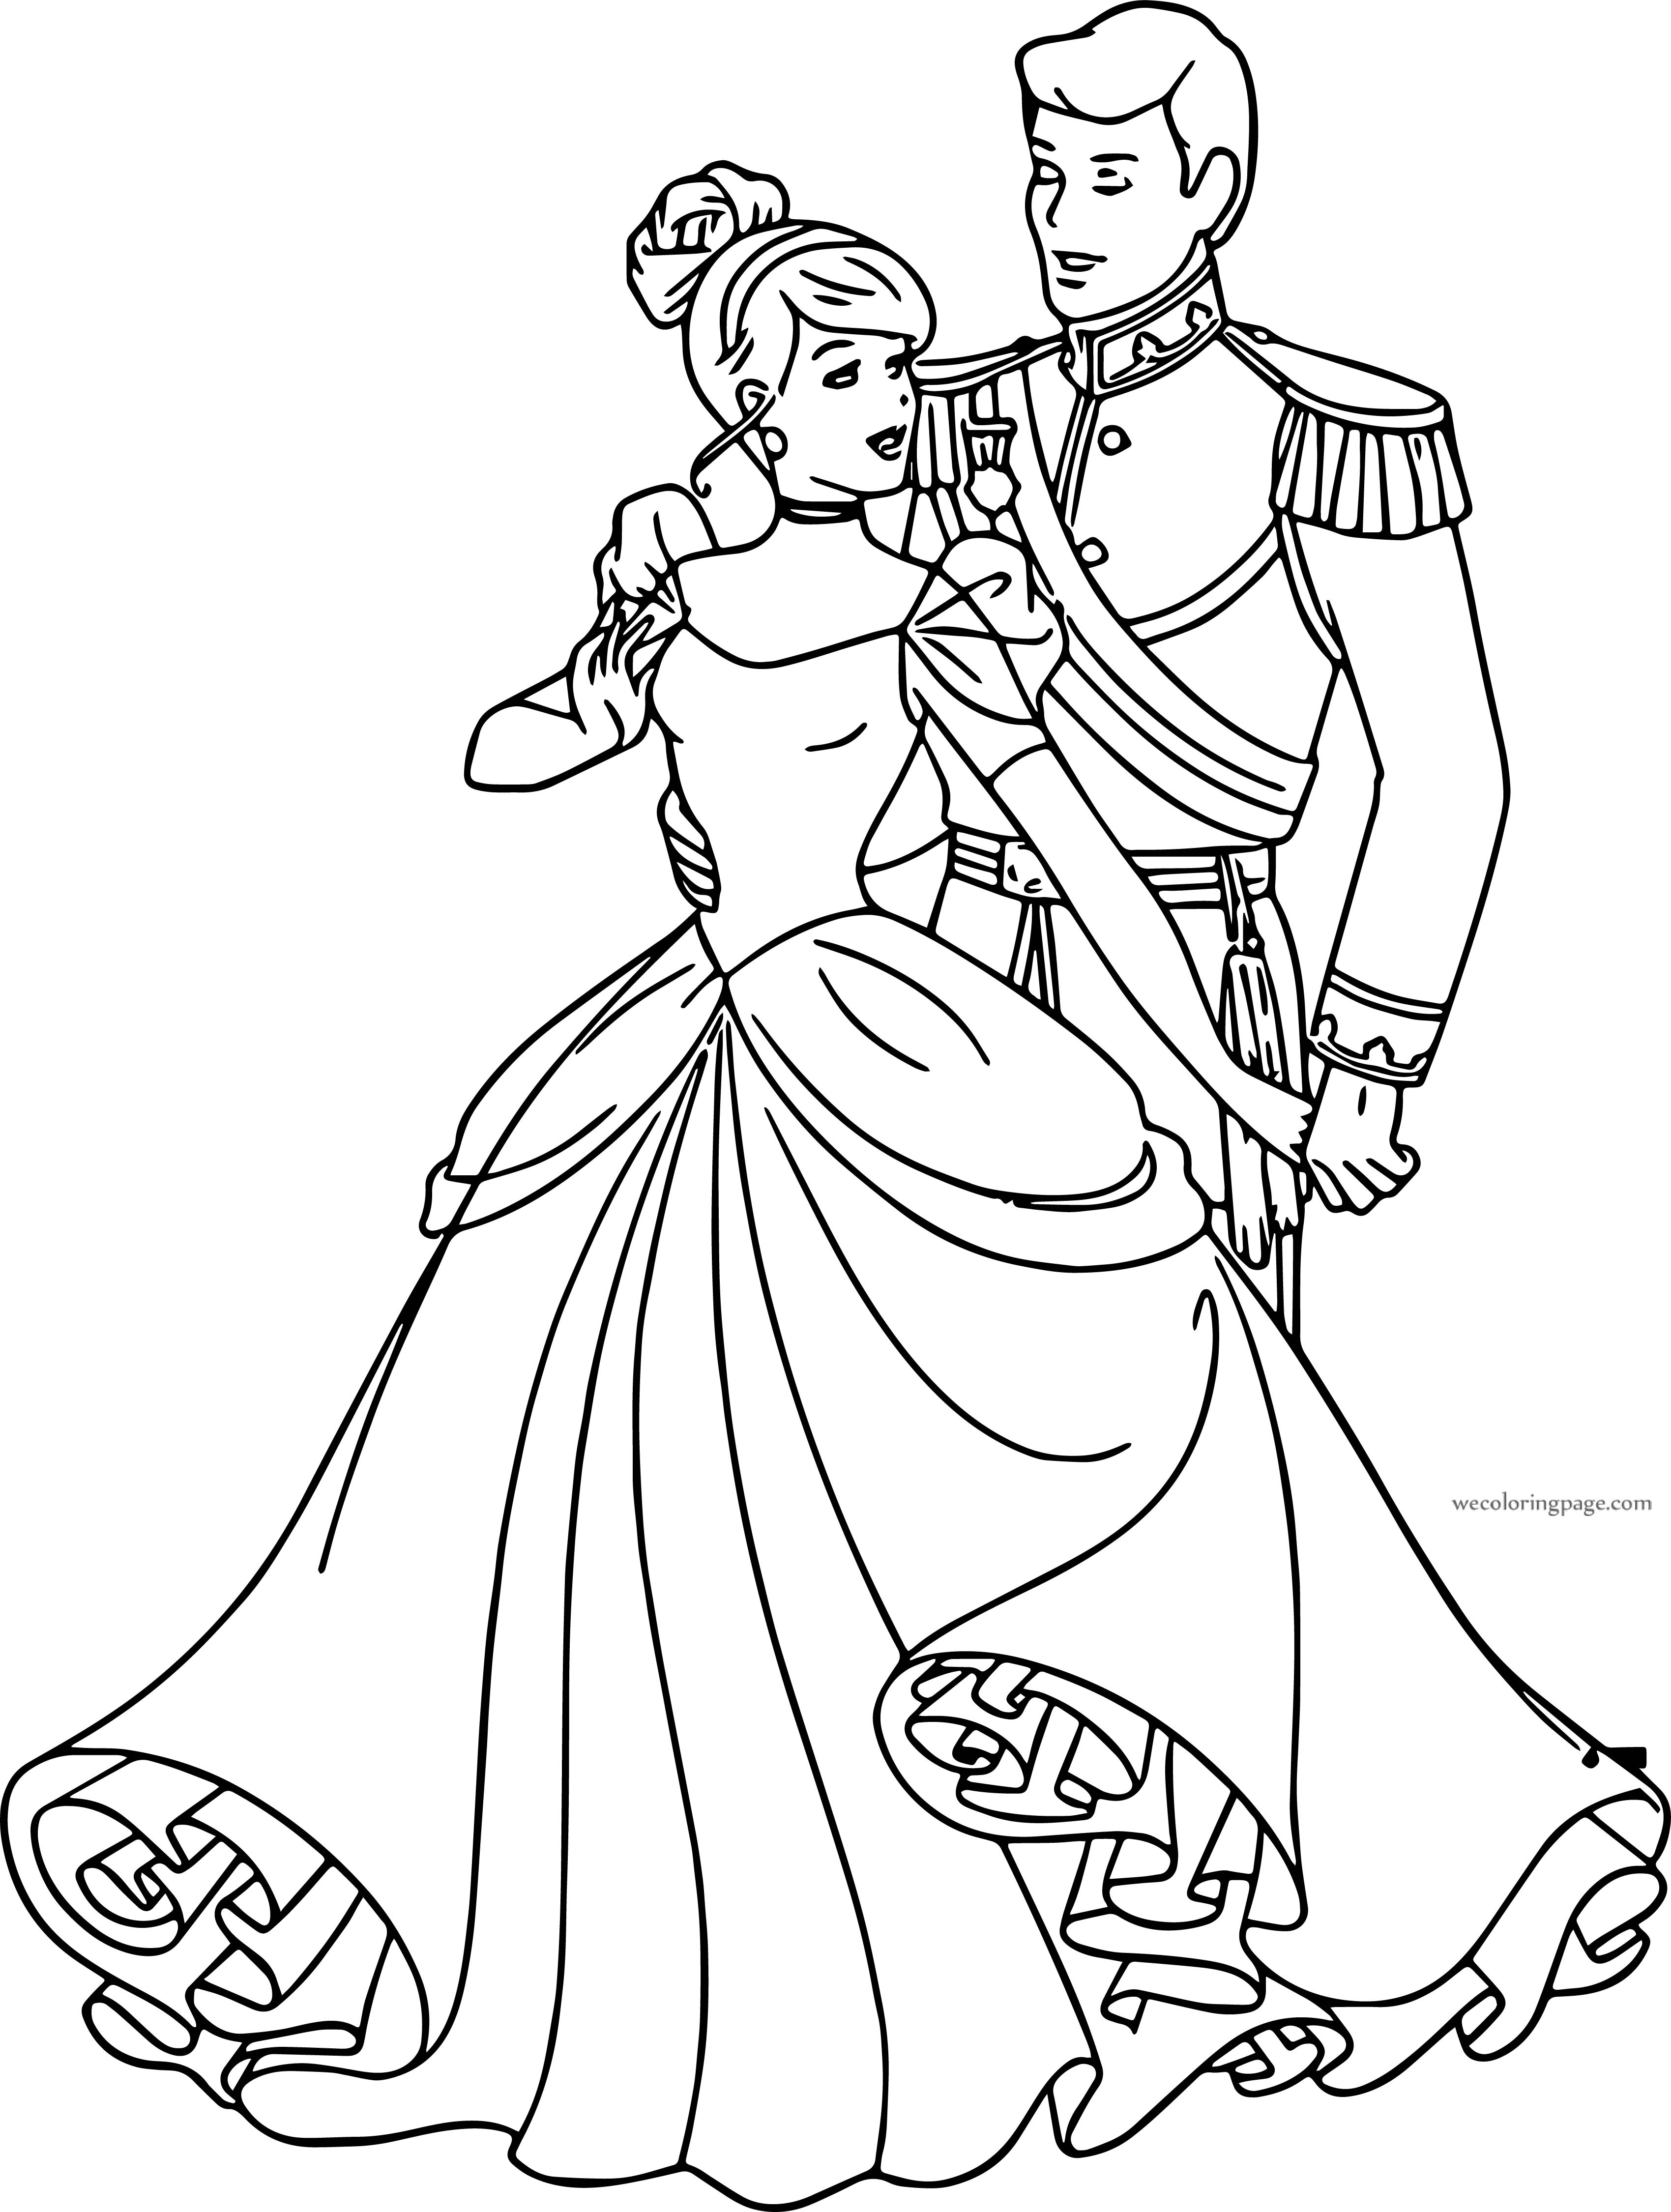 Cinderella And Prince Charming Going Together Coloring Pages